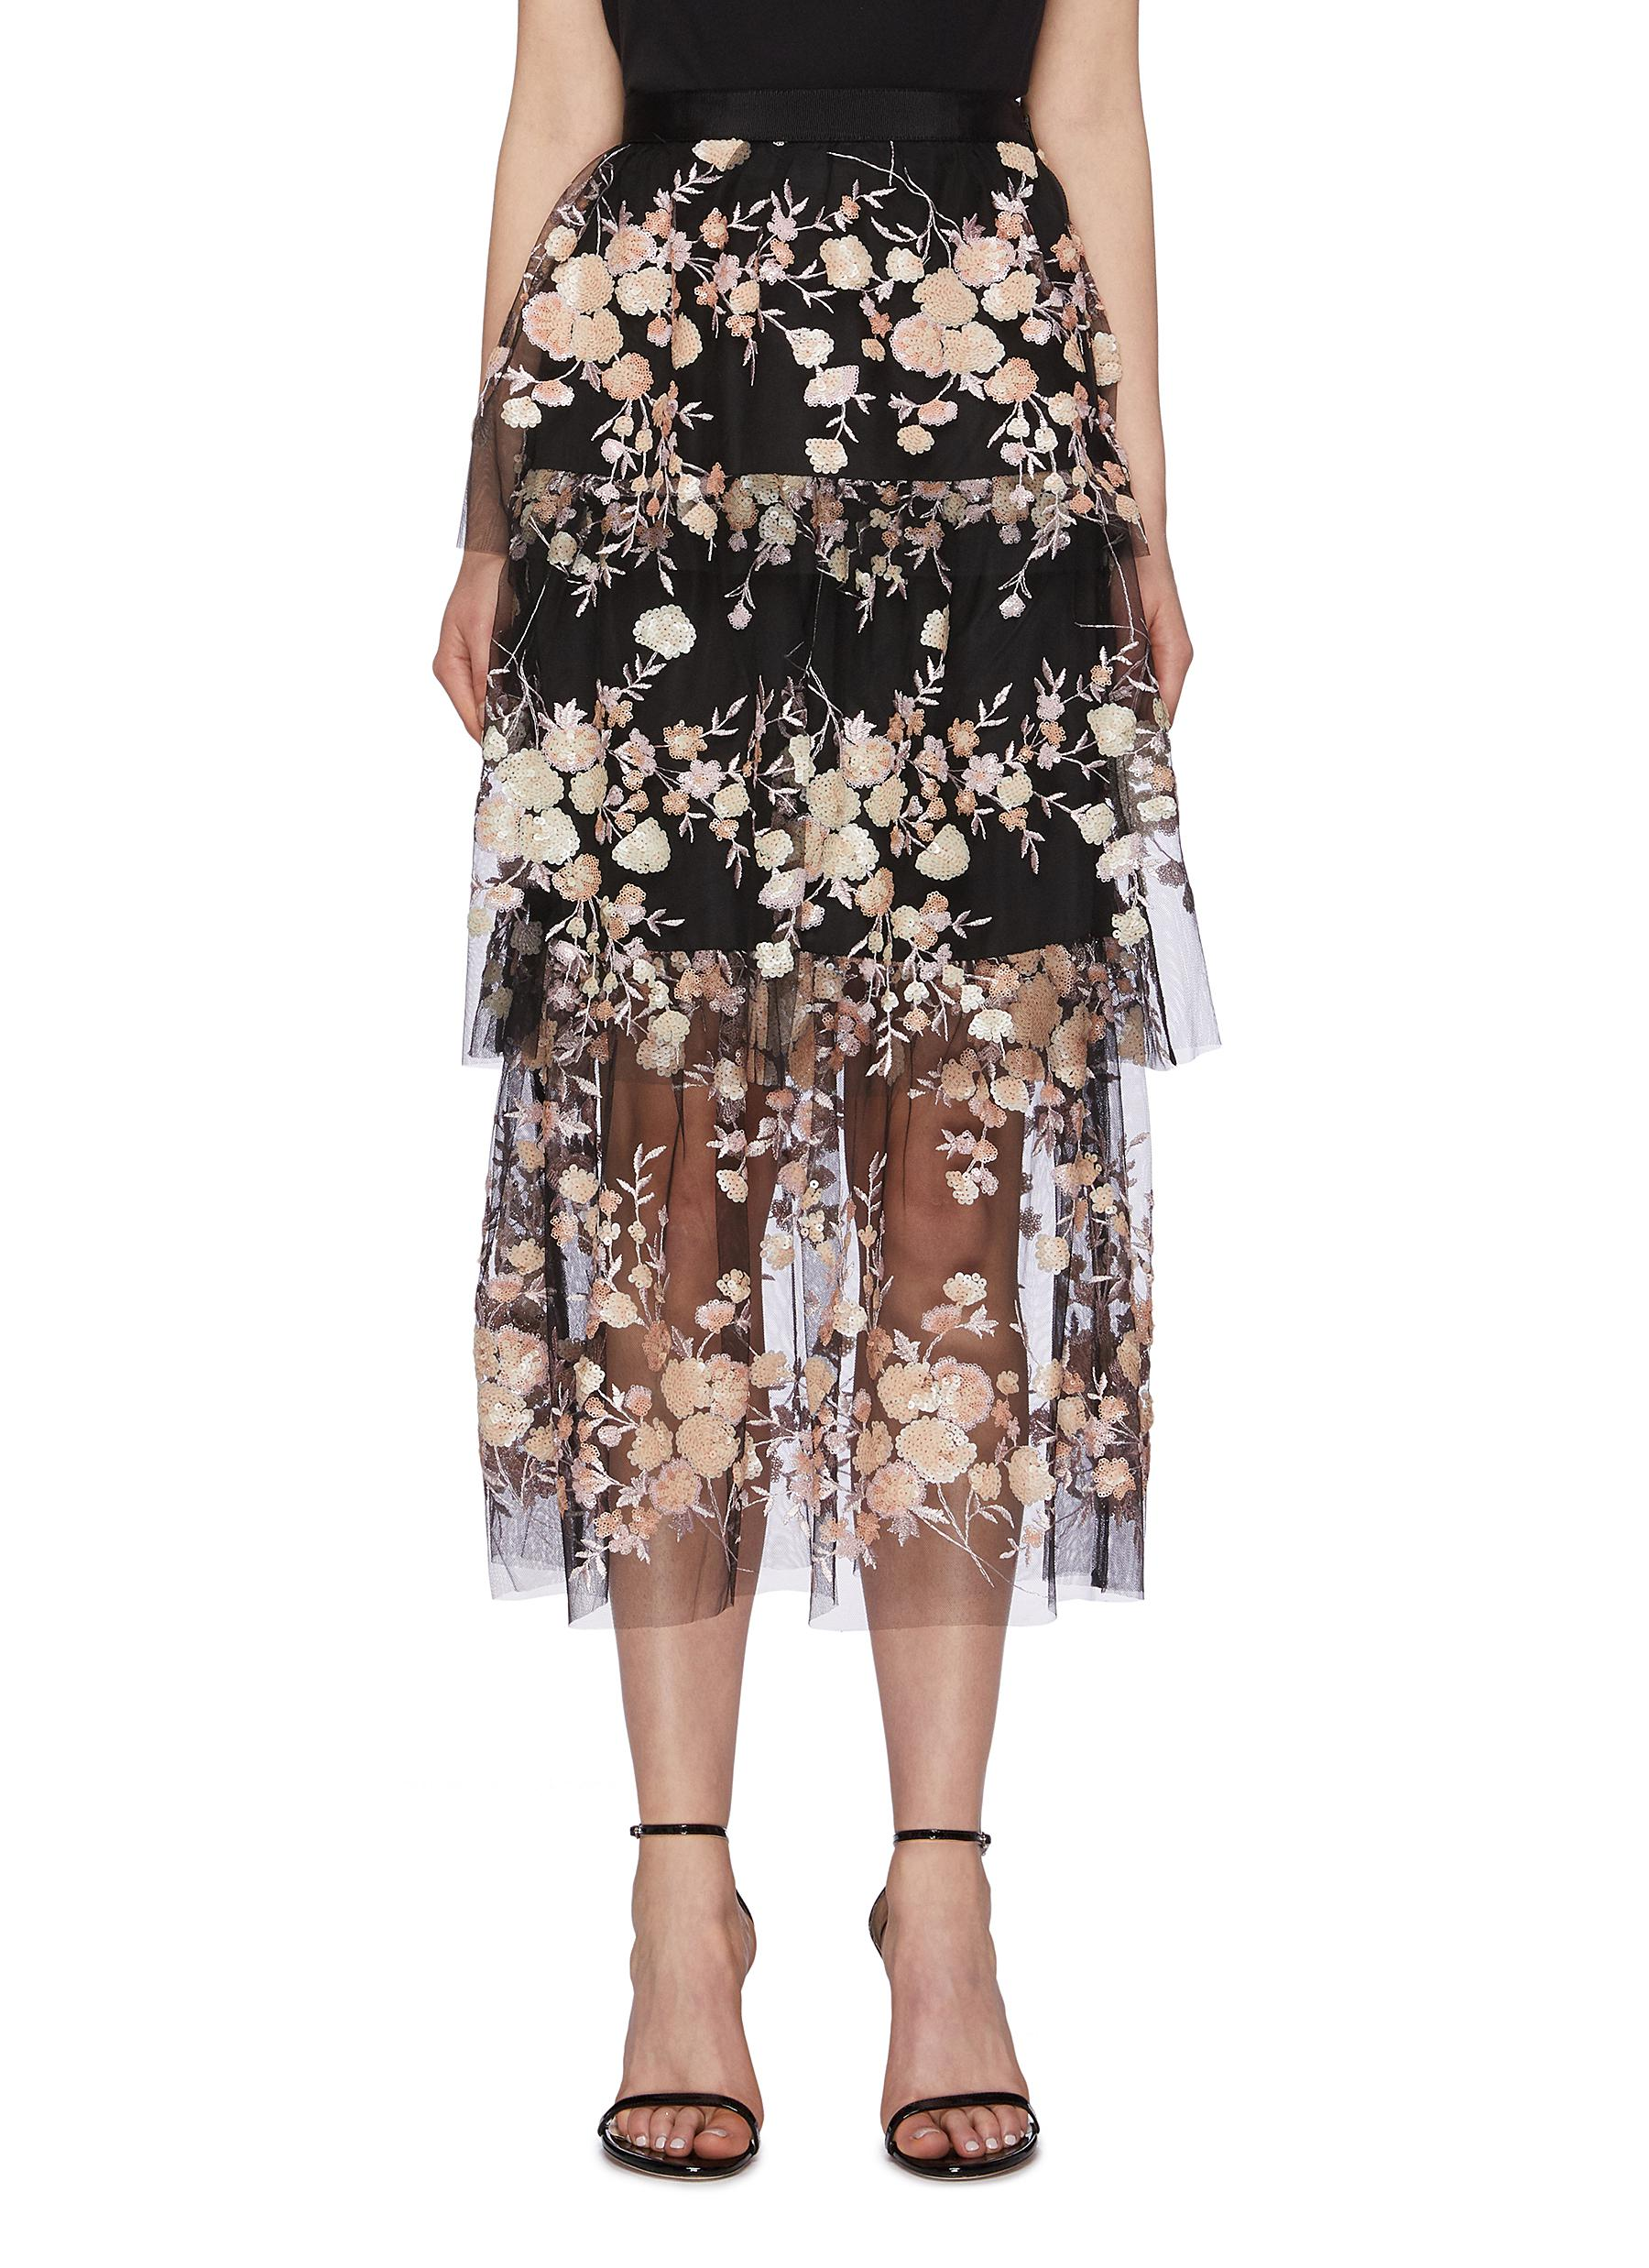 Sequin floral mesh tiered skirt by Self-Portrait